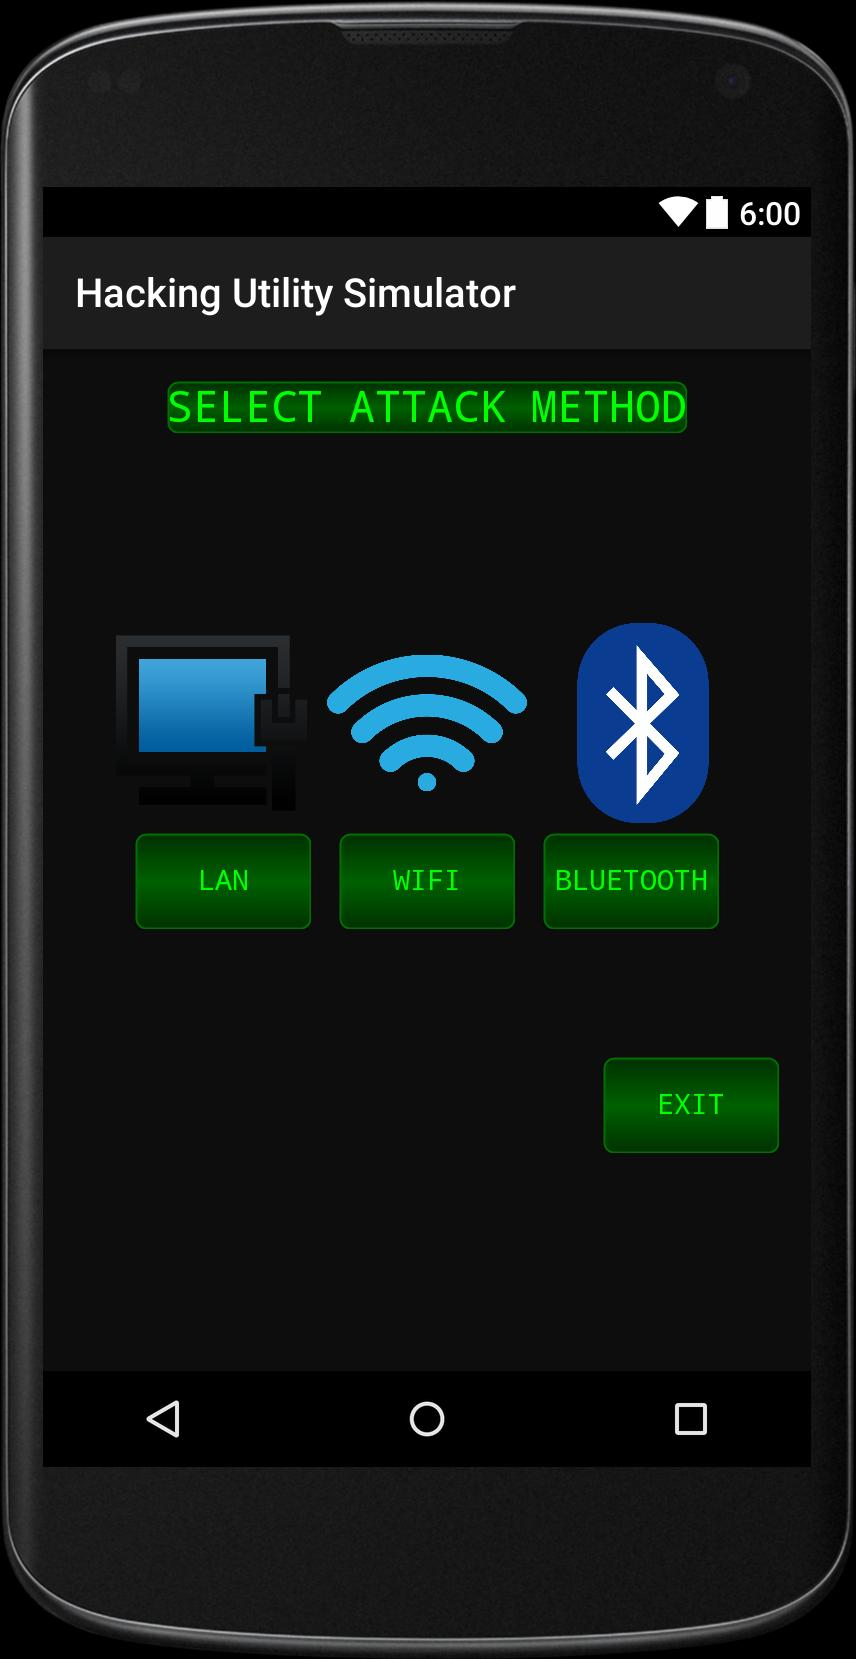 Phone Hacker Tools Simulator for Android - APK Download